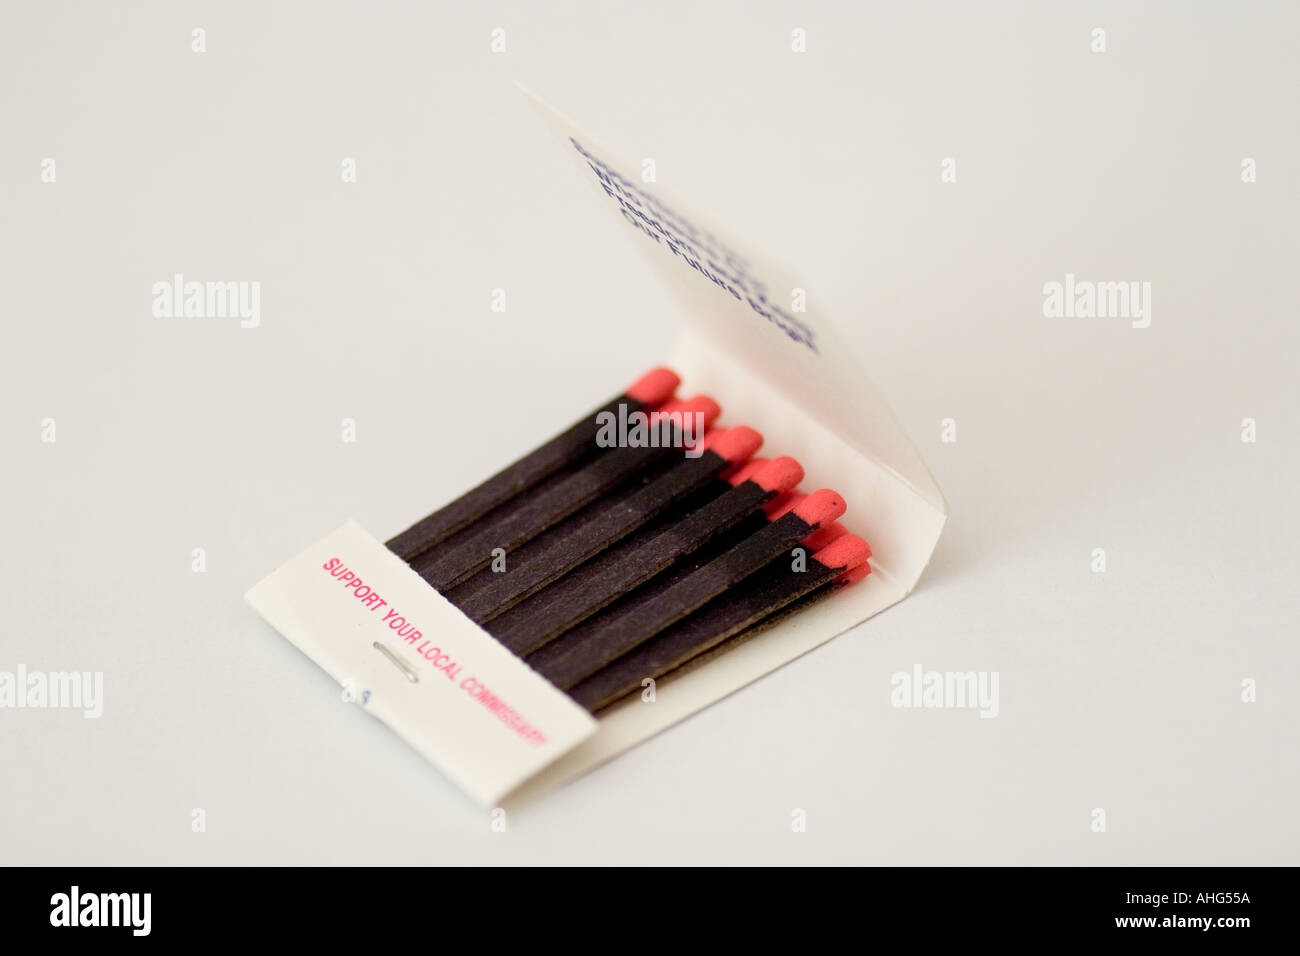 Open book match with matches - Stock Image